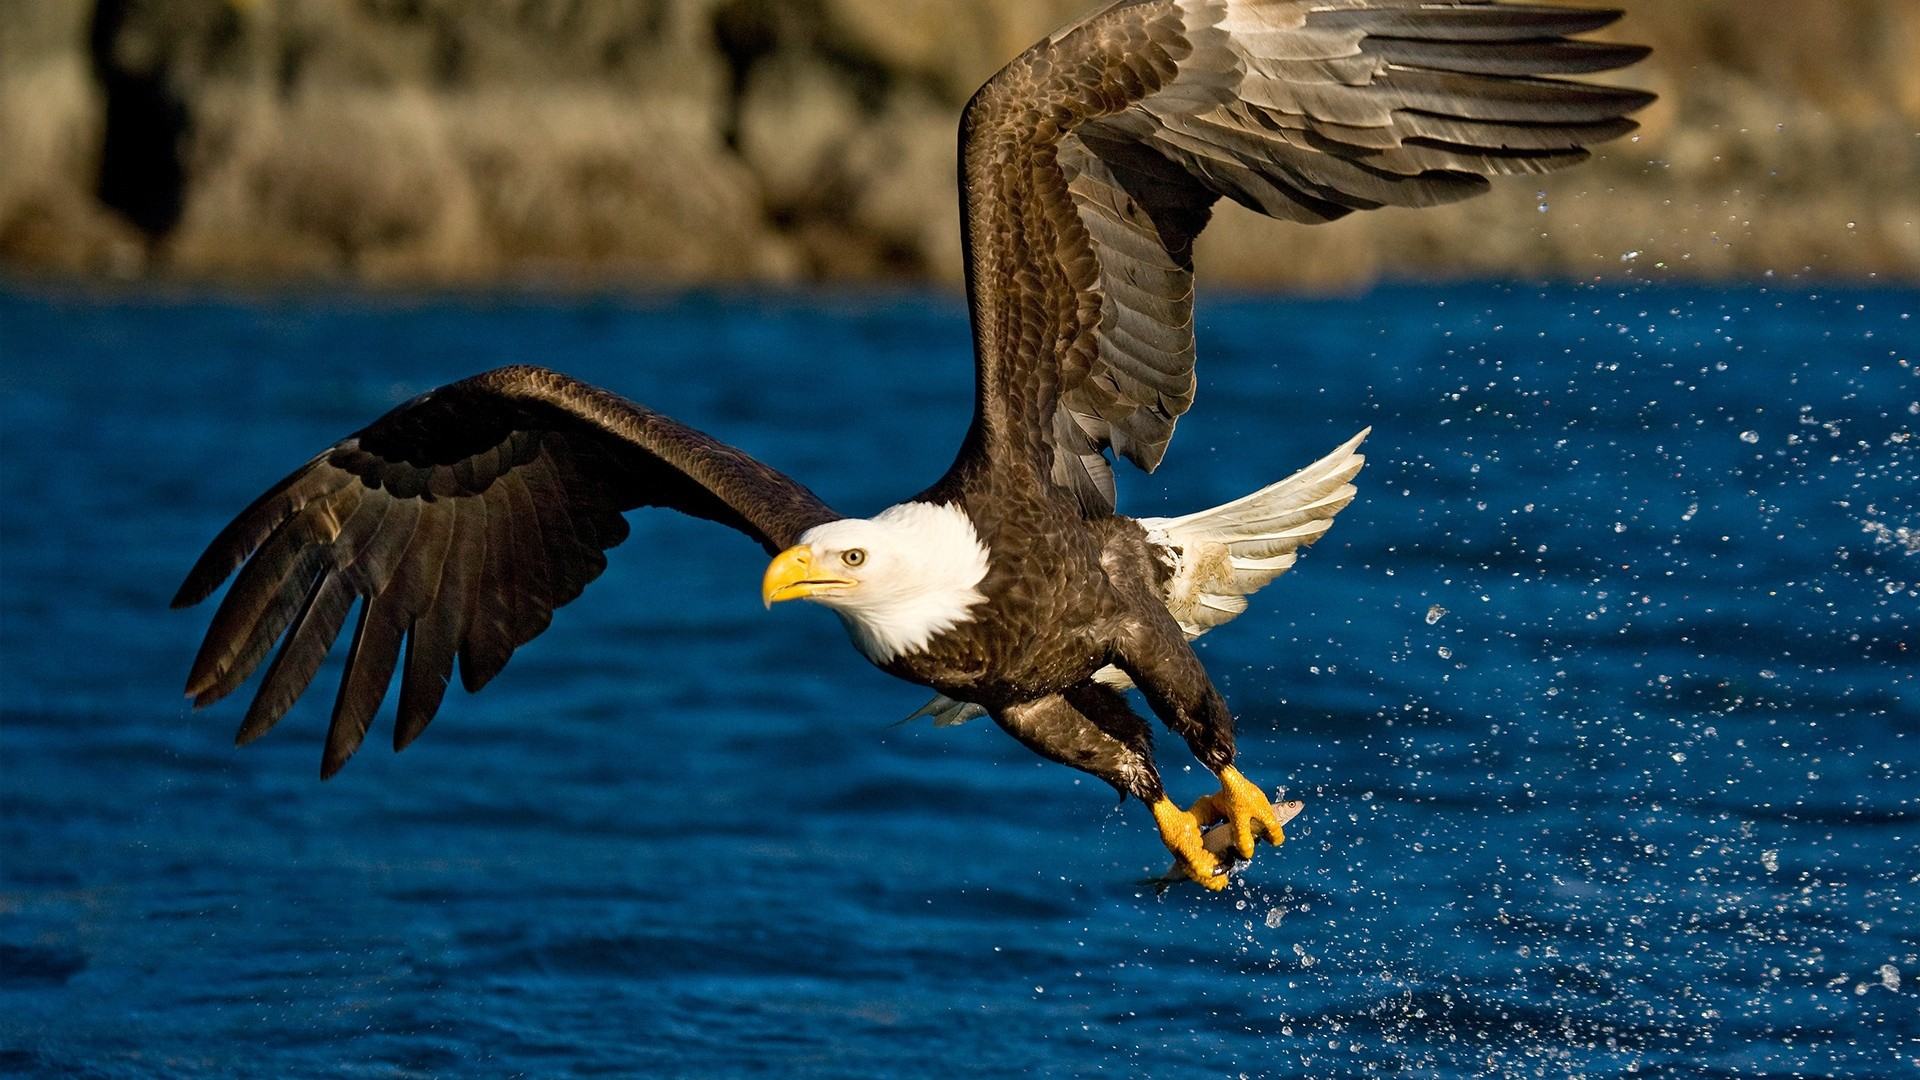 1920x1080 eagle with fish